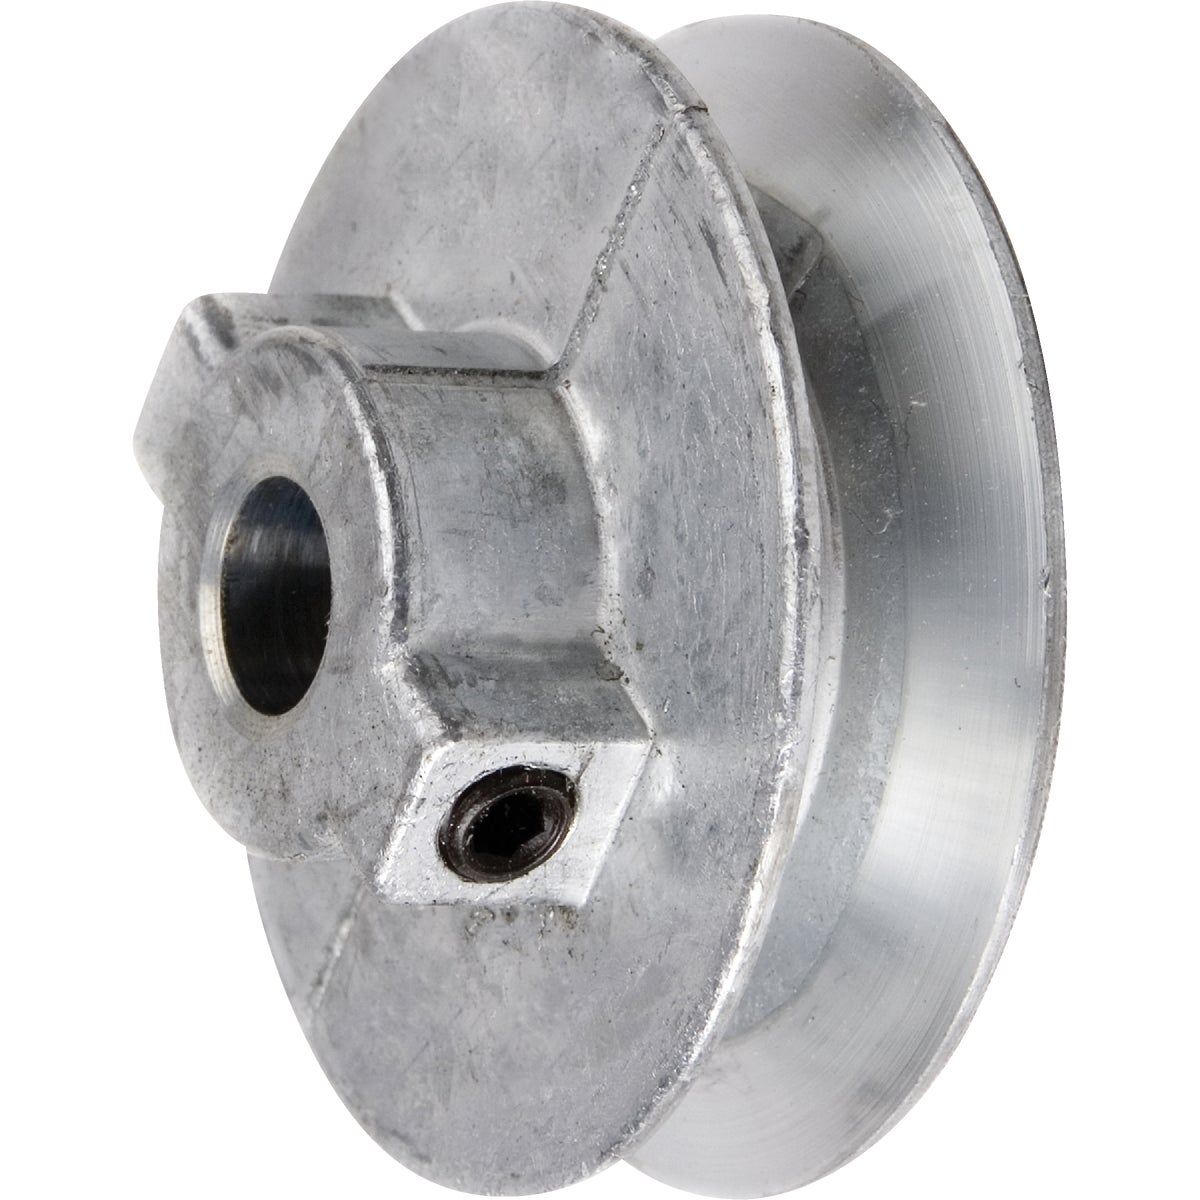 4-1/2X3/4 PULLEY